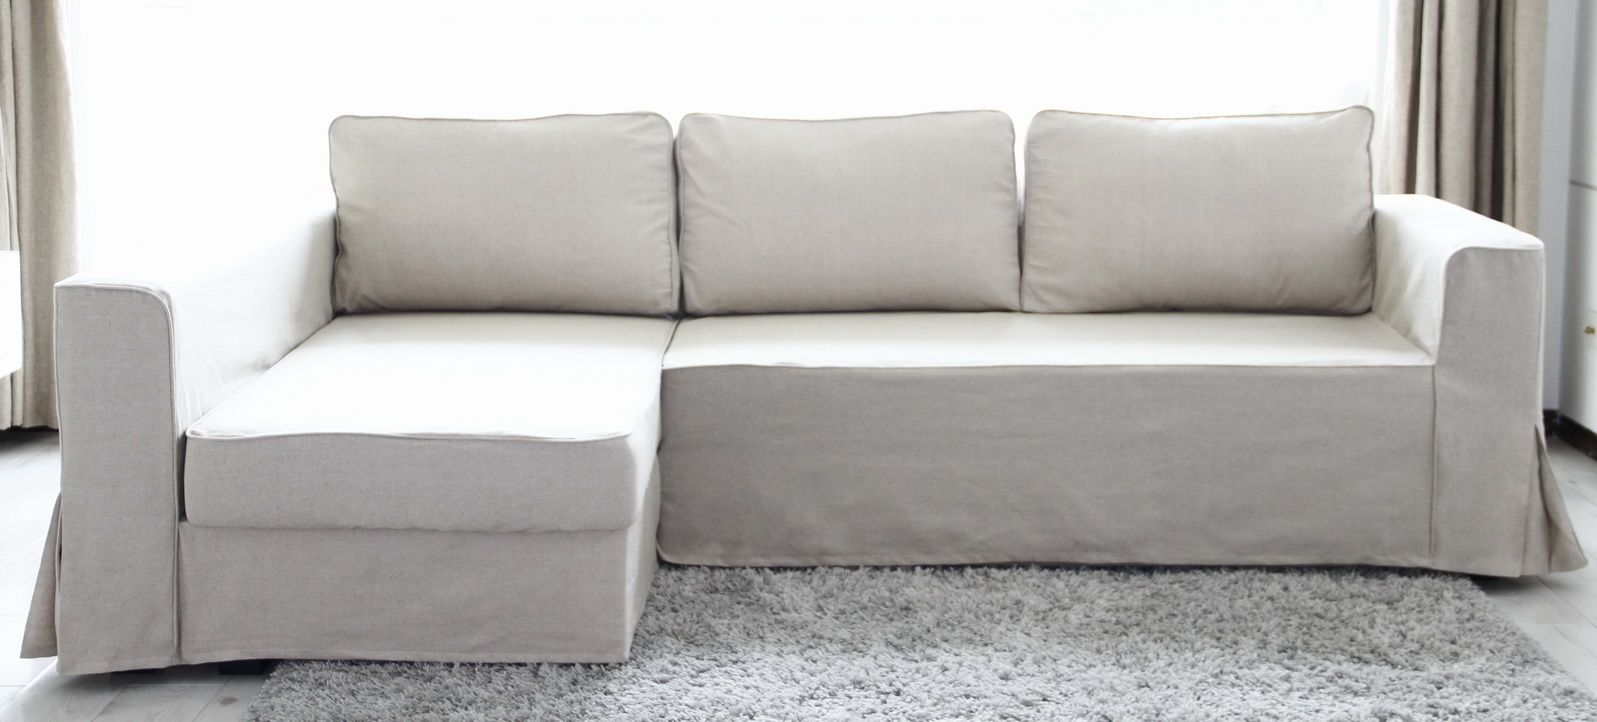 Leather Sofa Covers Ikea Cost Plus Sofas Athlone Loose Fit Linen Manstad Slipcovers Now Available For The Home Chaise Lounge Left Bed